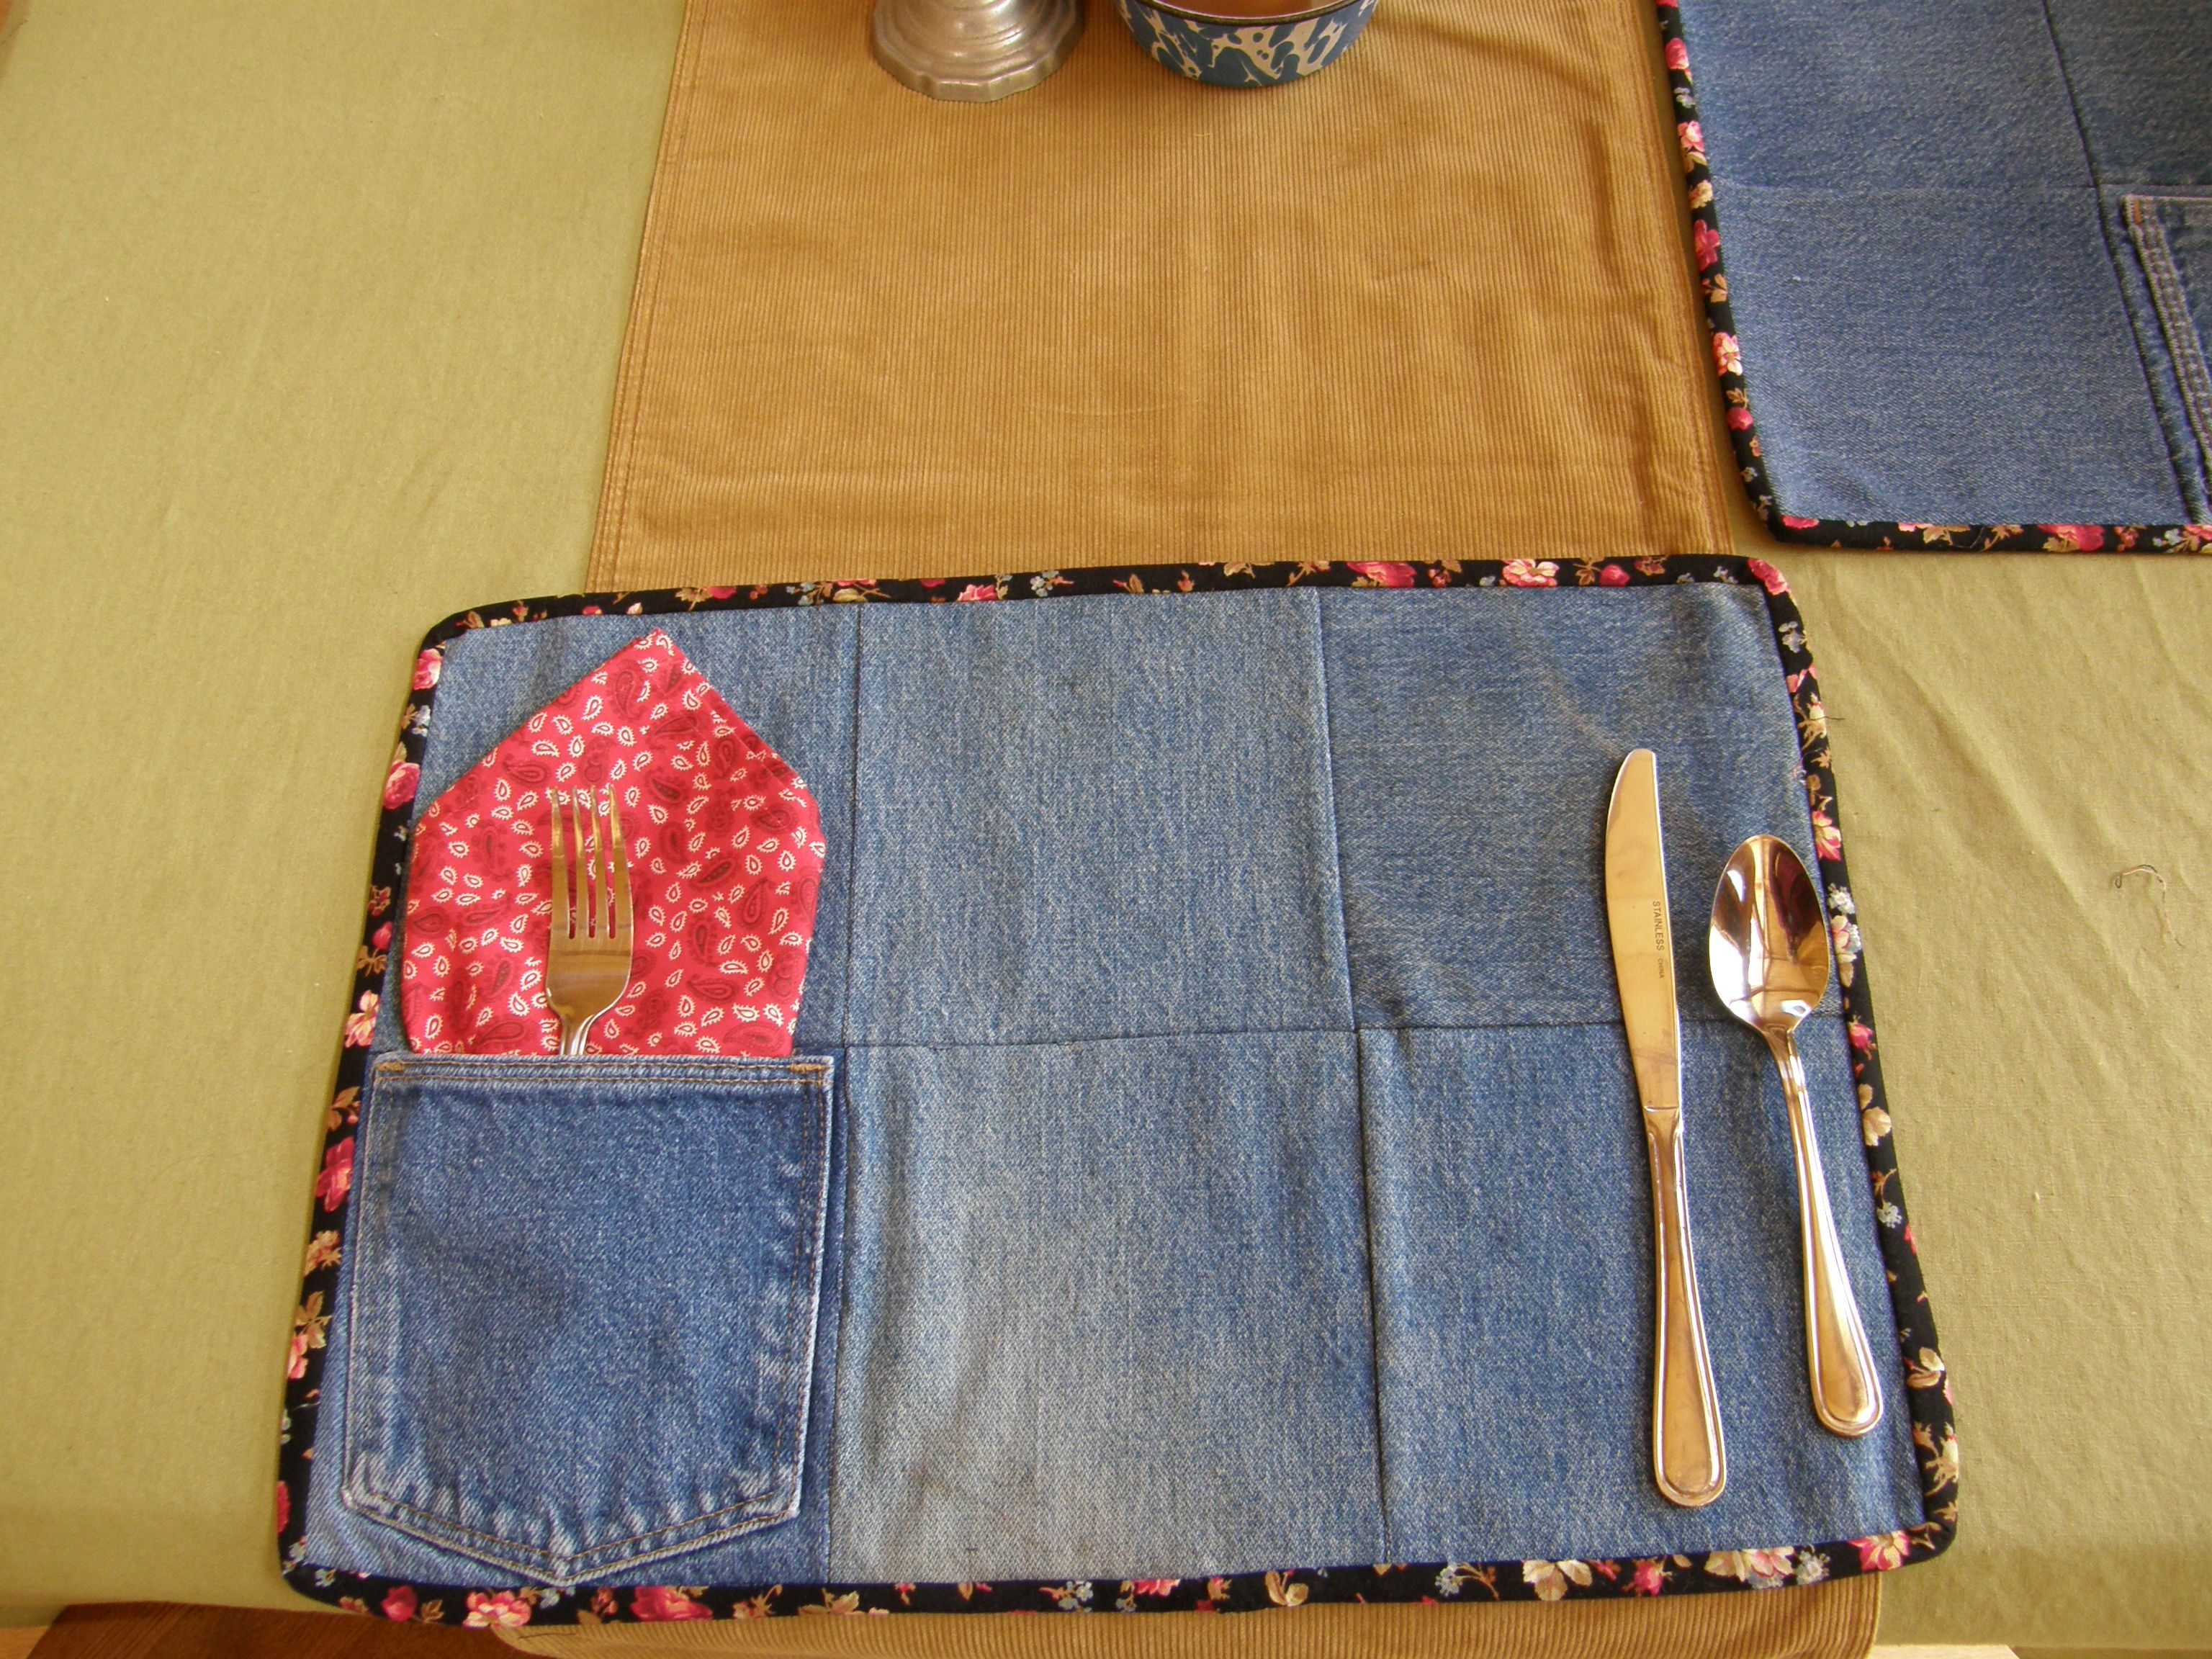 Jeans from a garage sale made into placemats